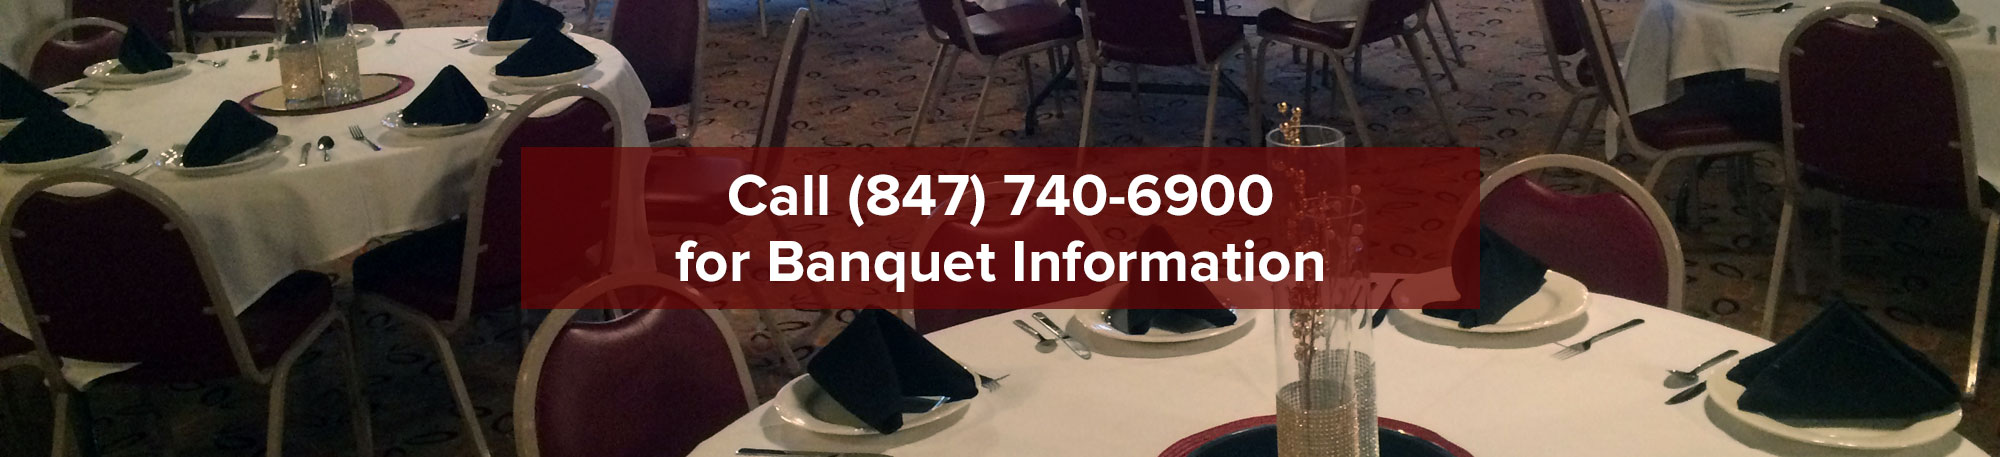 home-banquet-template-image